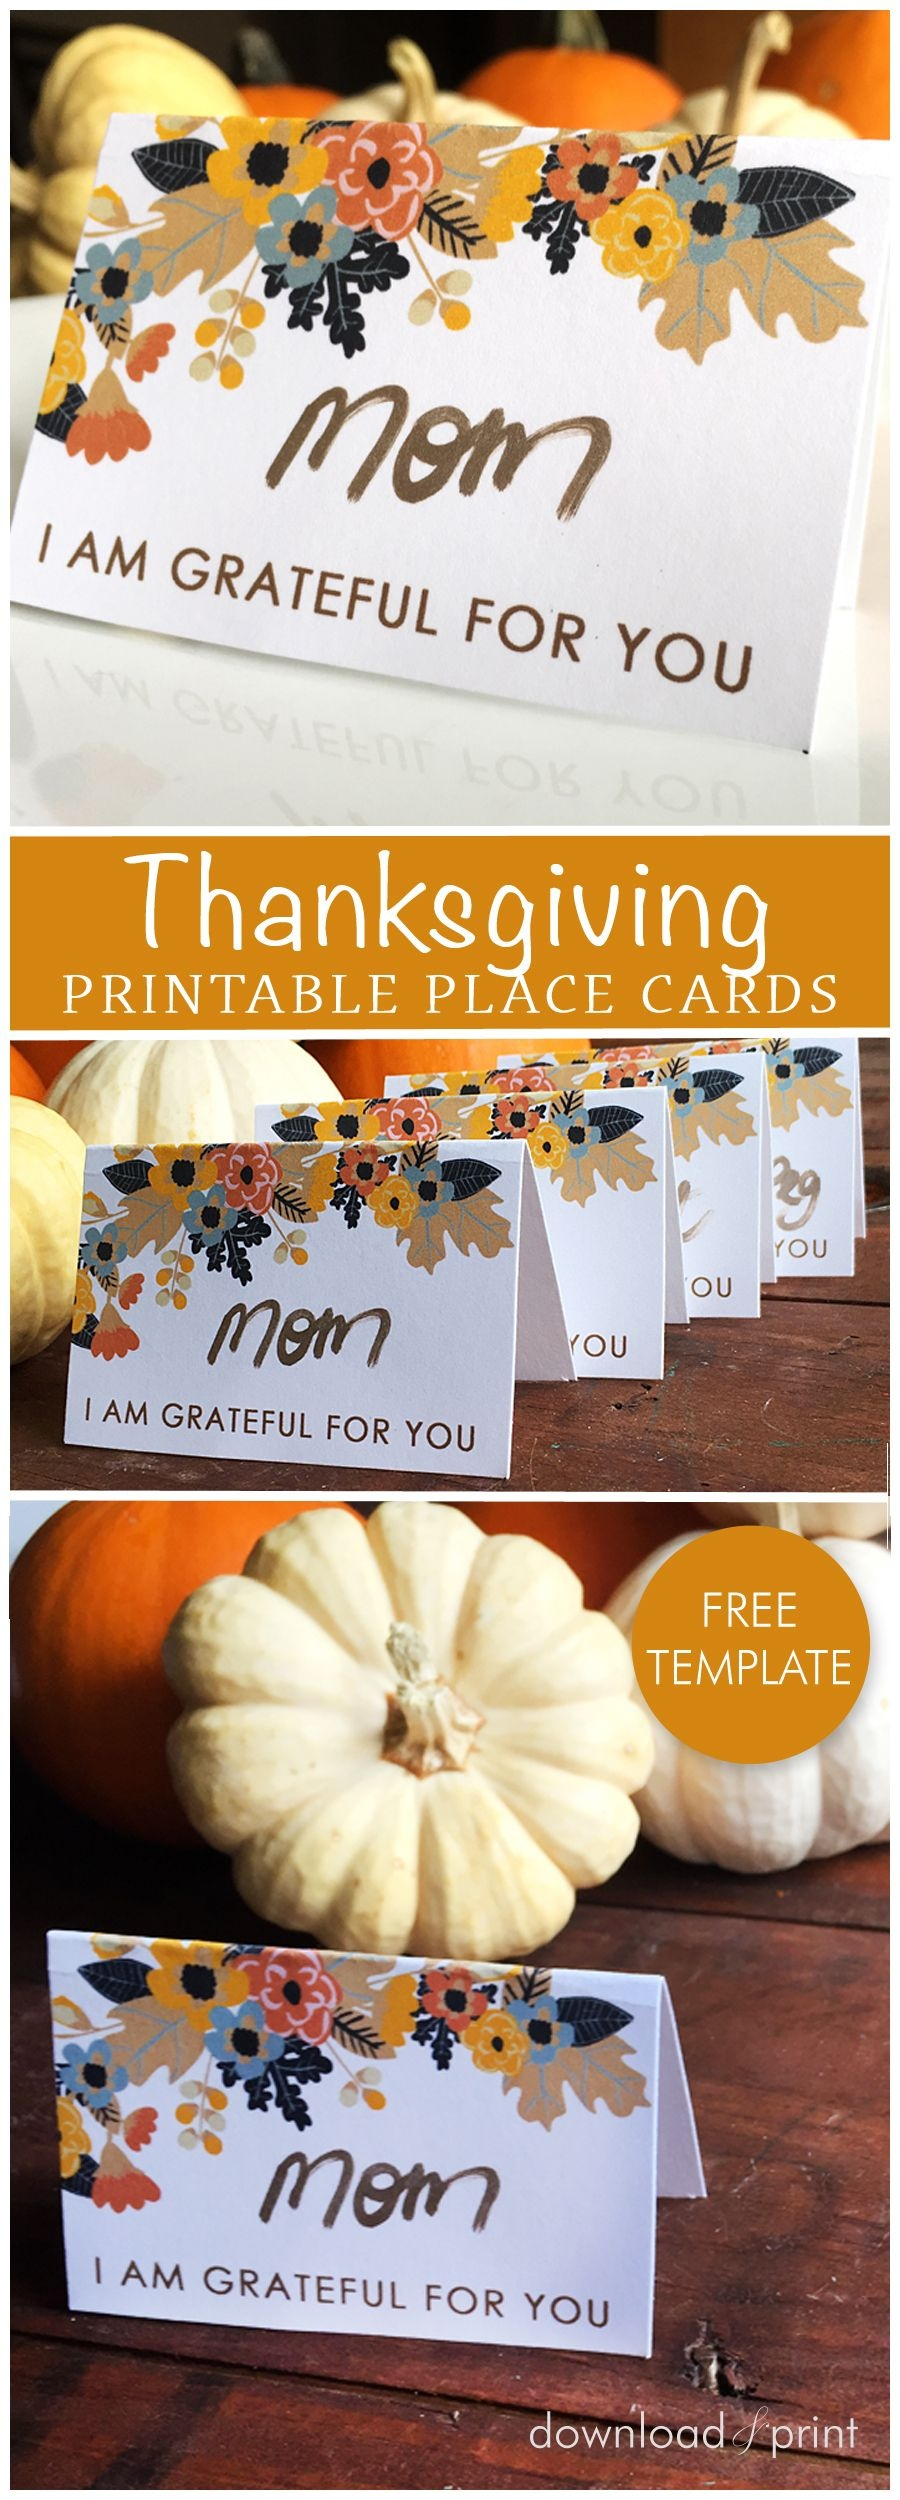 Free Printable Place Card Template, Perfect For Your Thanksgiving - Free Printable Personalized Thanksgiving Place Cards